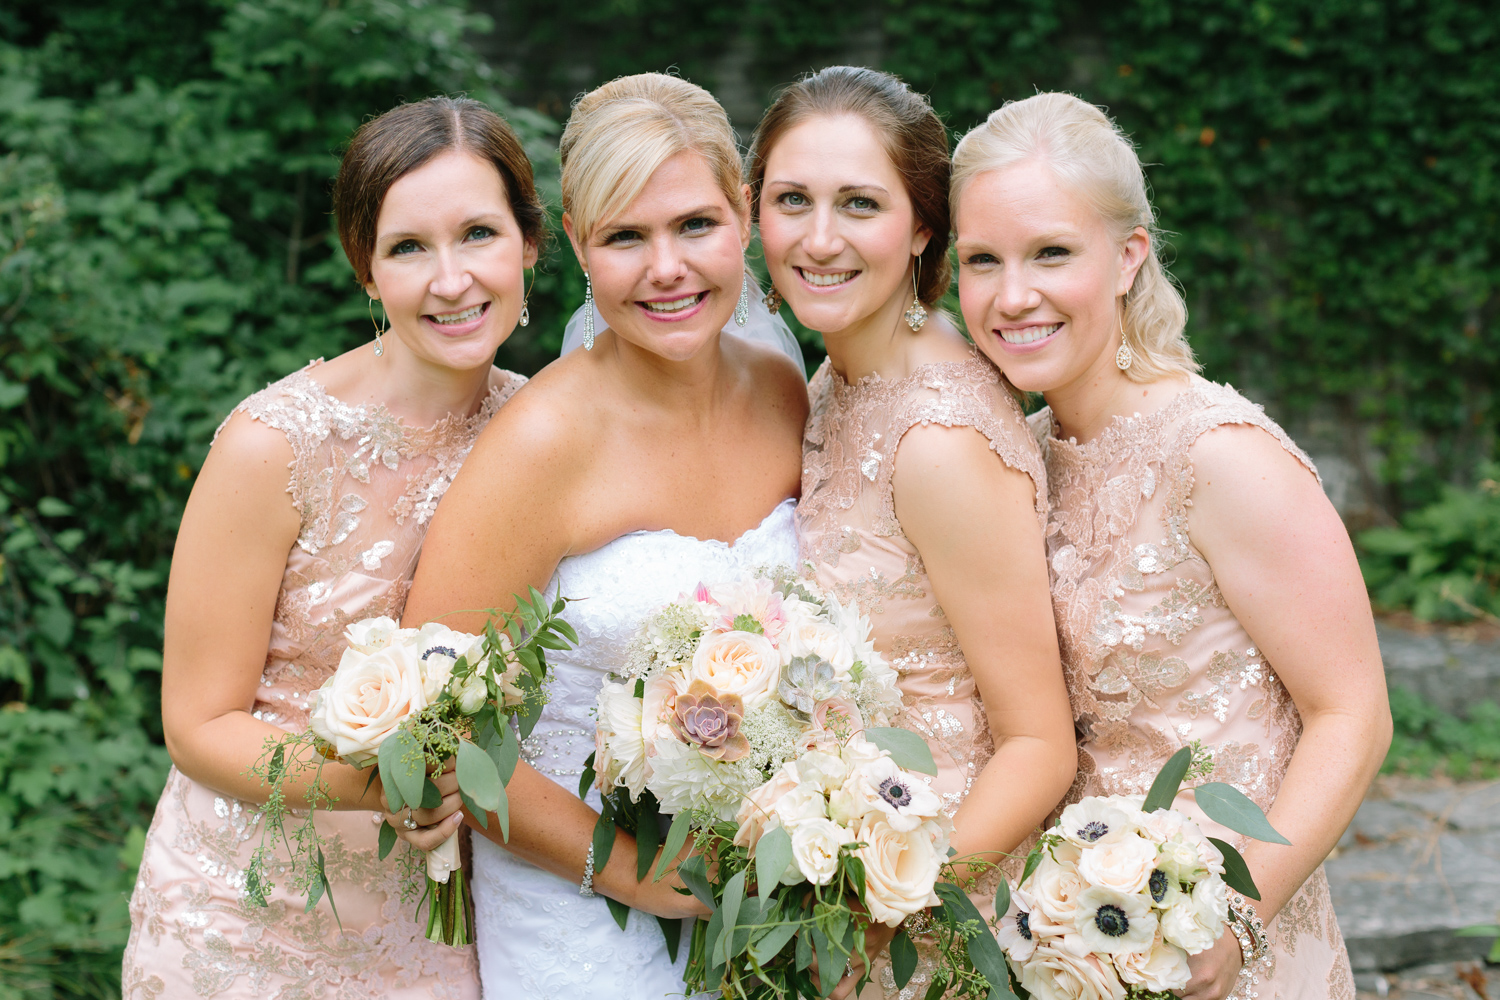 BridalPulse - Golf Lovers' Country Club Wedding - bride and bridesmaids